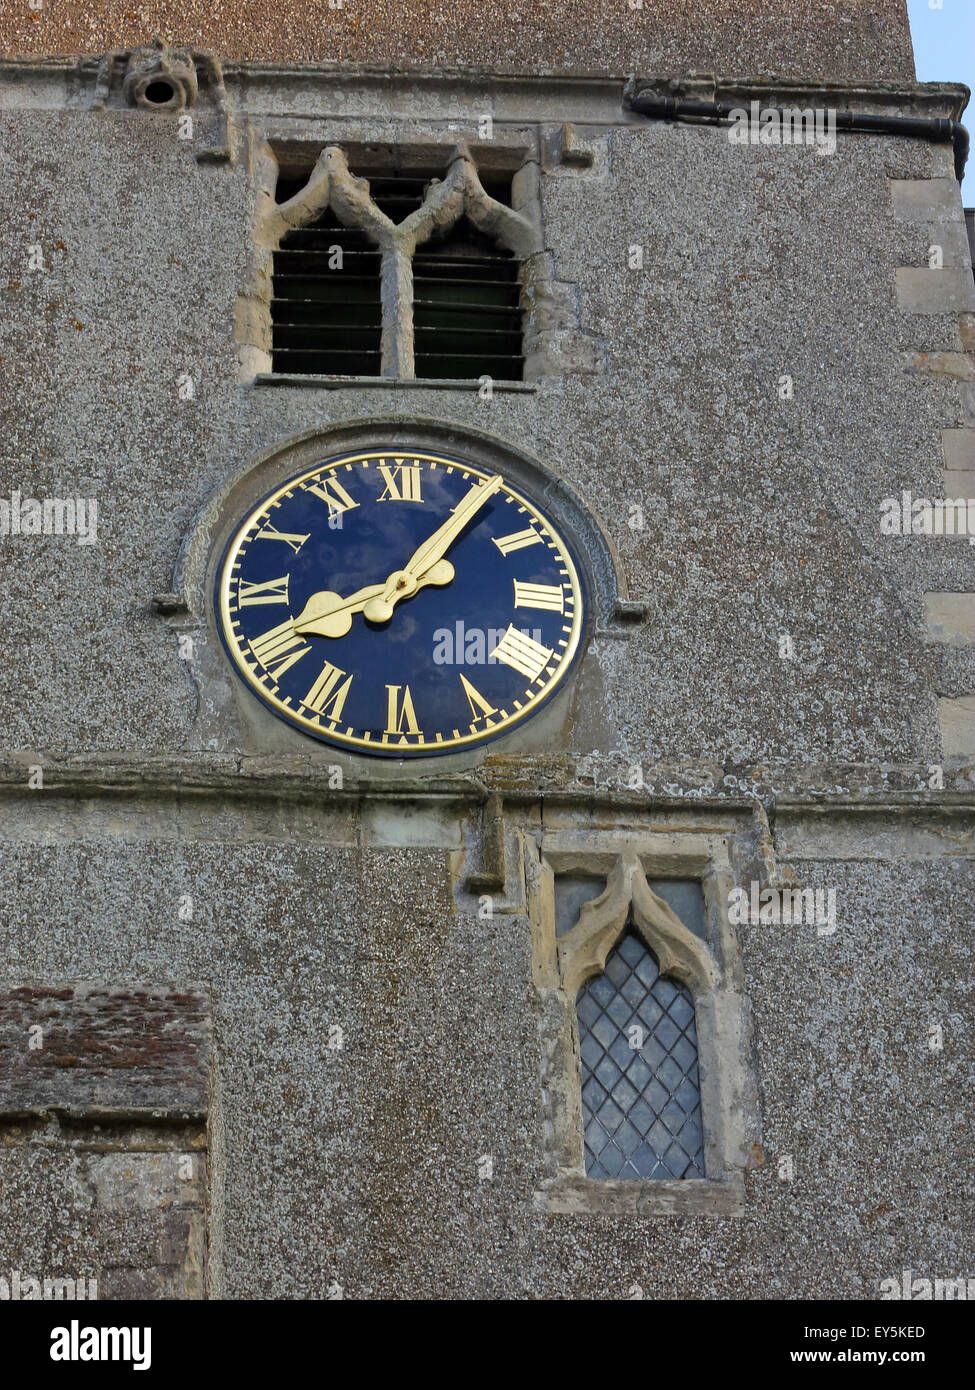 East Ilsley,village,parish,Berkshire,Mary,Saint,Time,fingers,stone,A34,United Kingdom,highest,grade,grade II,listed,church,medieval,stone,render,Hildersley,West Ilsley,Norman,English,style,chancel,religion,religious,place,of,worship,Clock,face,England,UK,United Kingdom,blue,gold,golden,window,GoTonySmith,Buy Pictures of,Buy Images Of